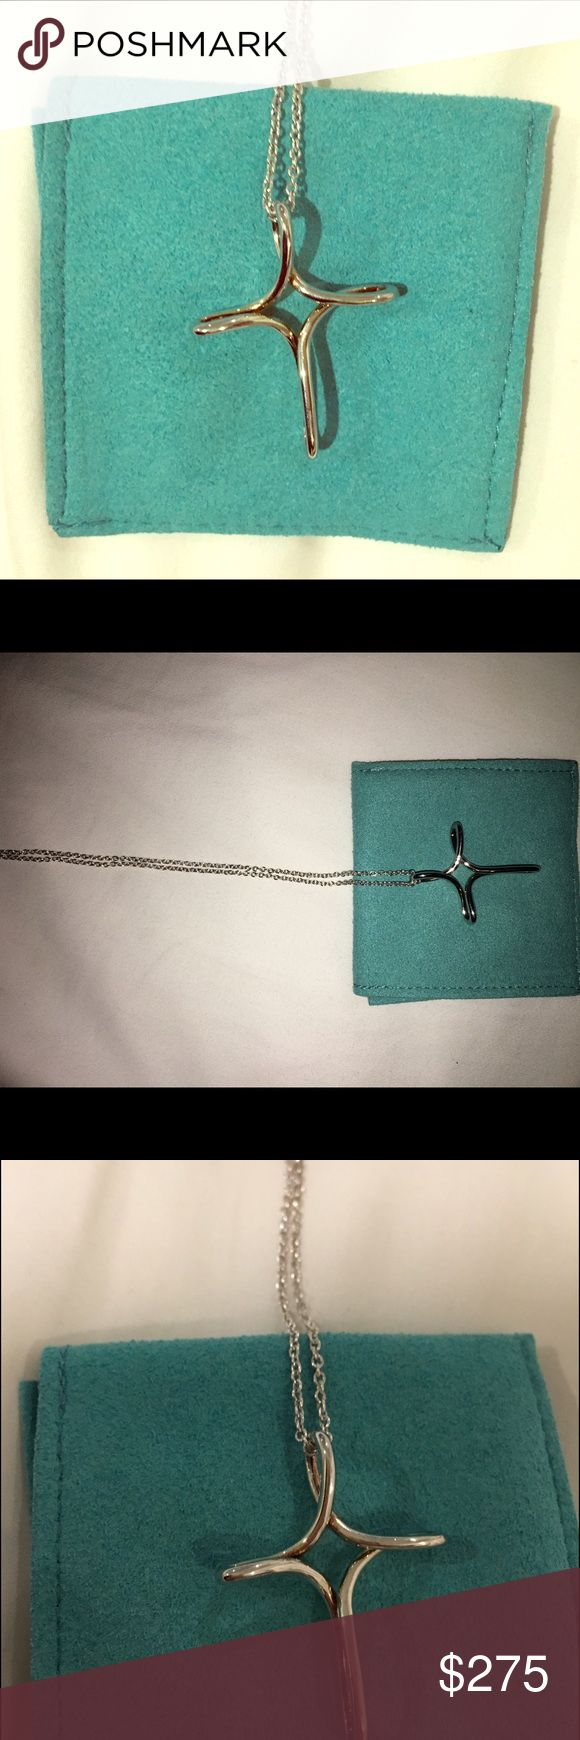 Tiffany & Co Elsa Peretti Infinity Cross Necklace beautiful never worn sterling silver cross necklace, 100% authentic and comes with original dust bag Tiffany & Co. Accessories